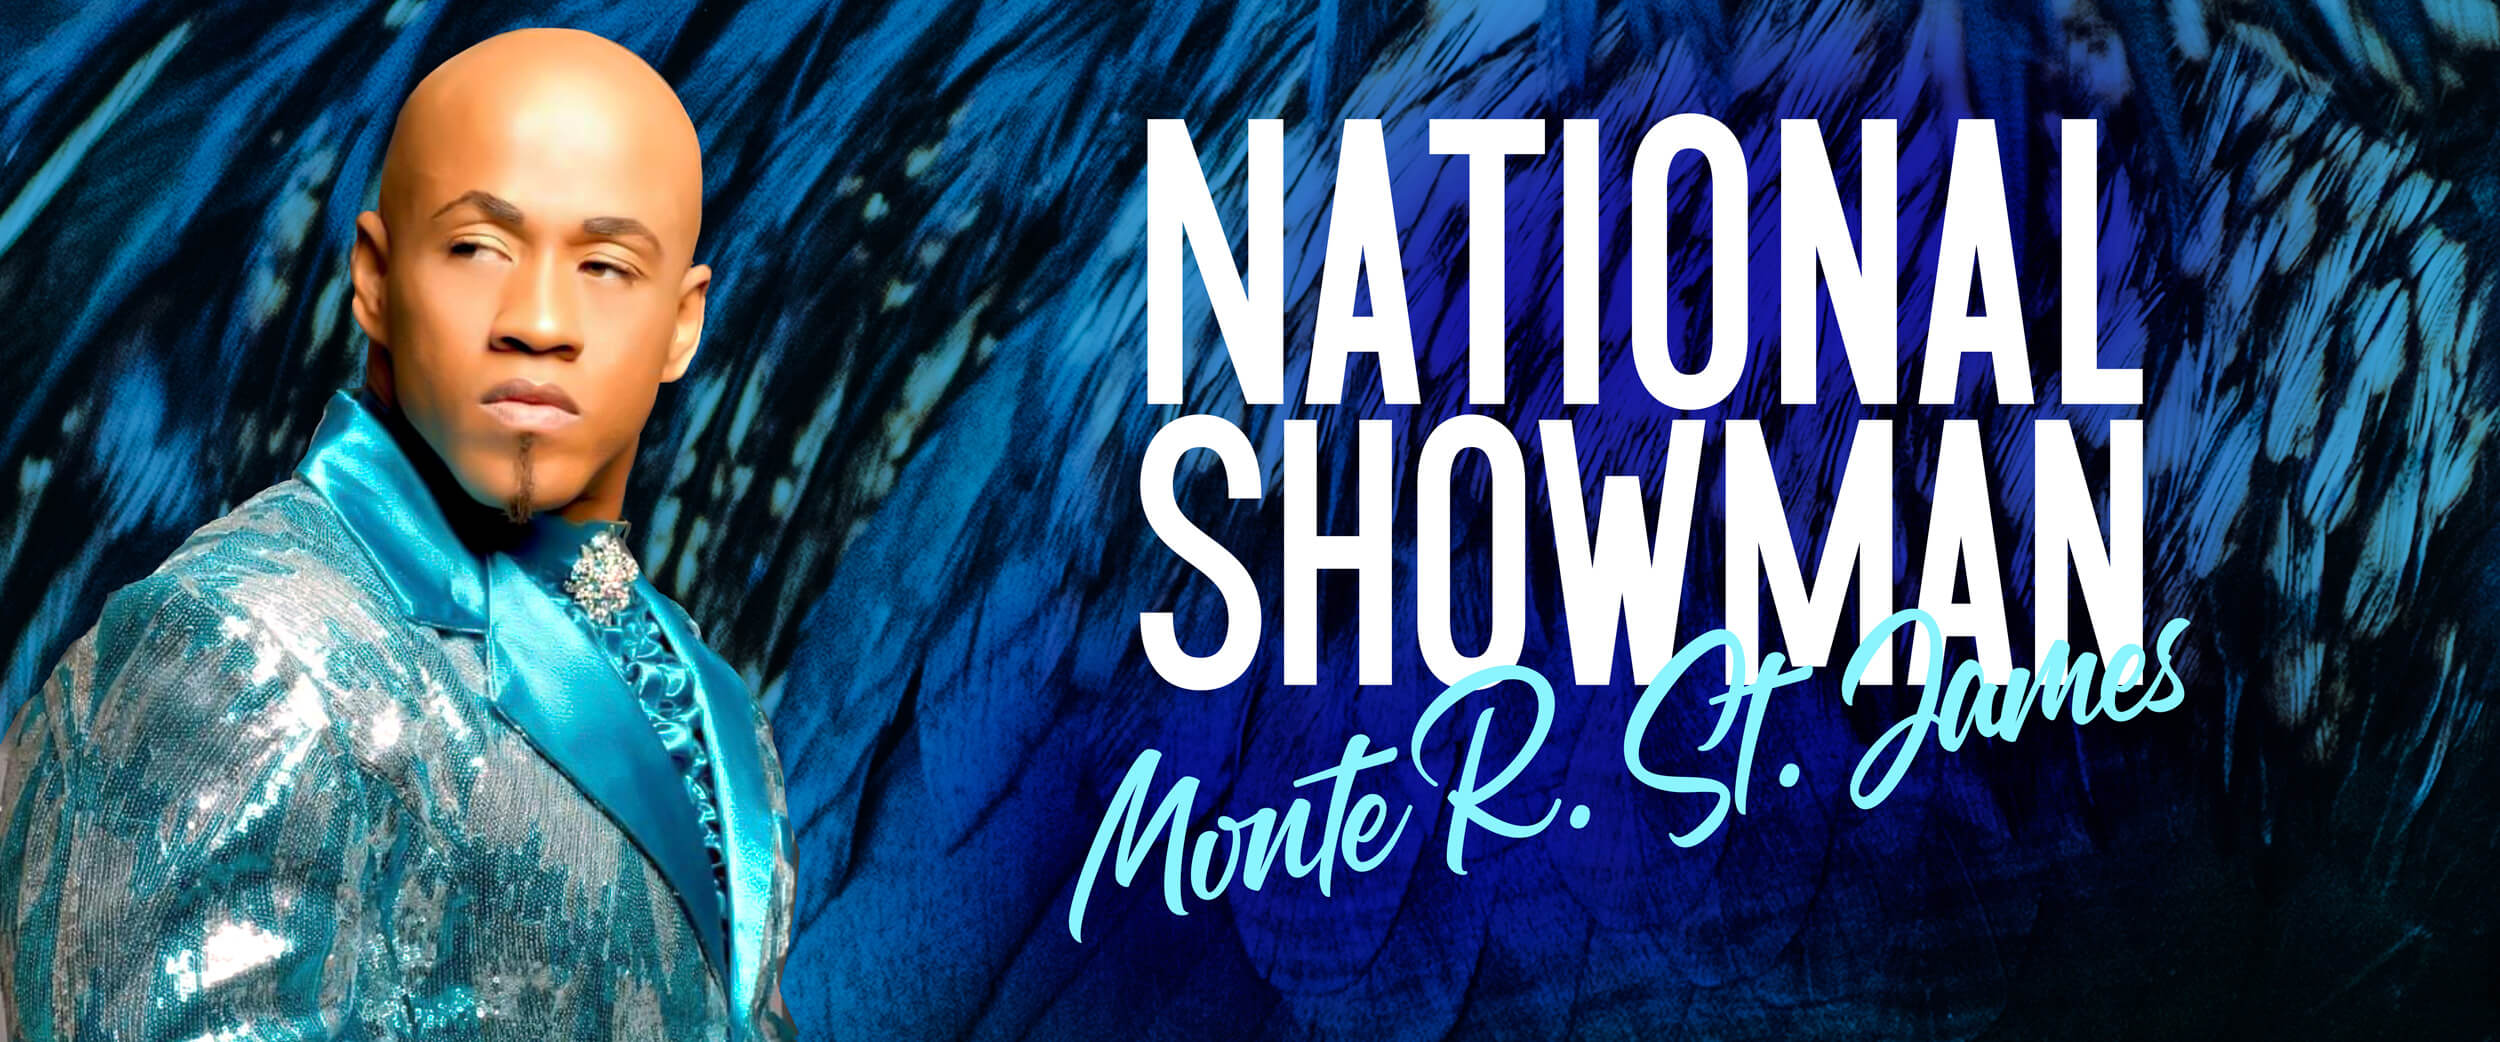 Monte-R-St-James---National-Showman-banner-1